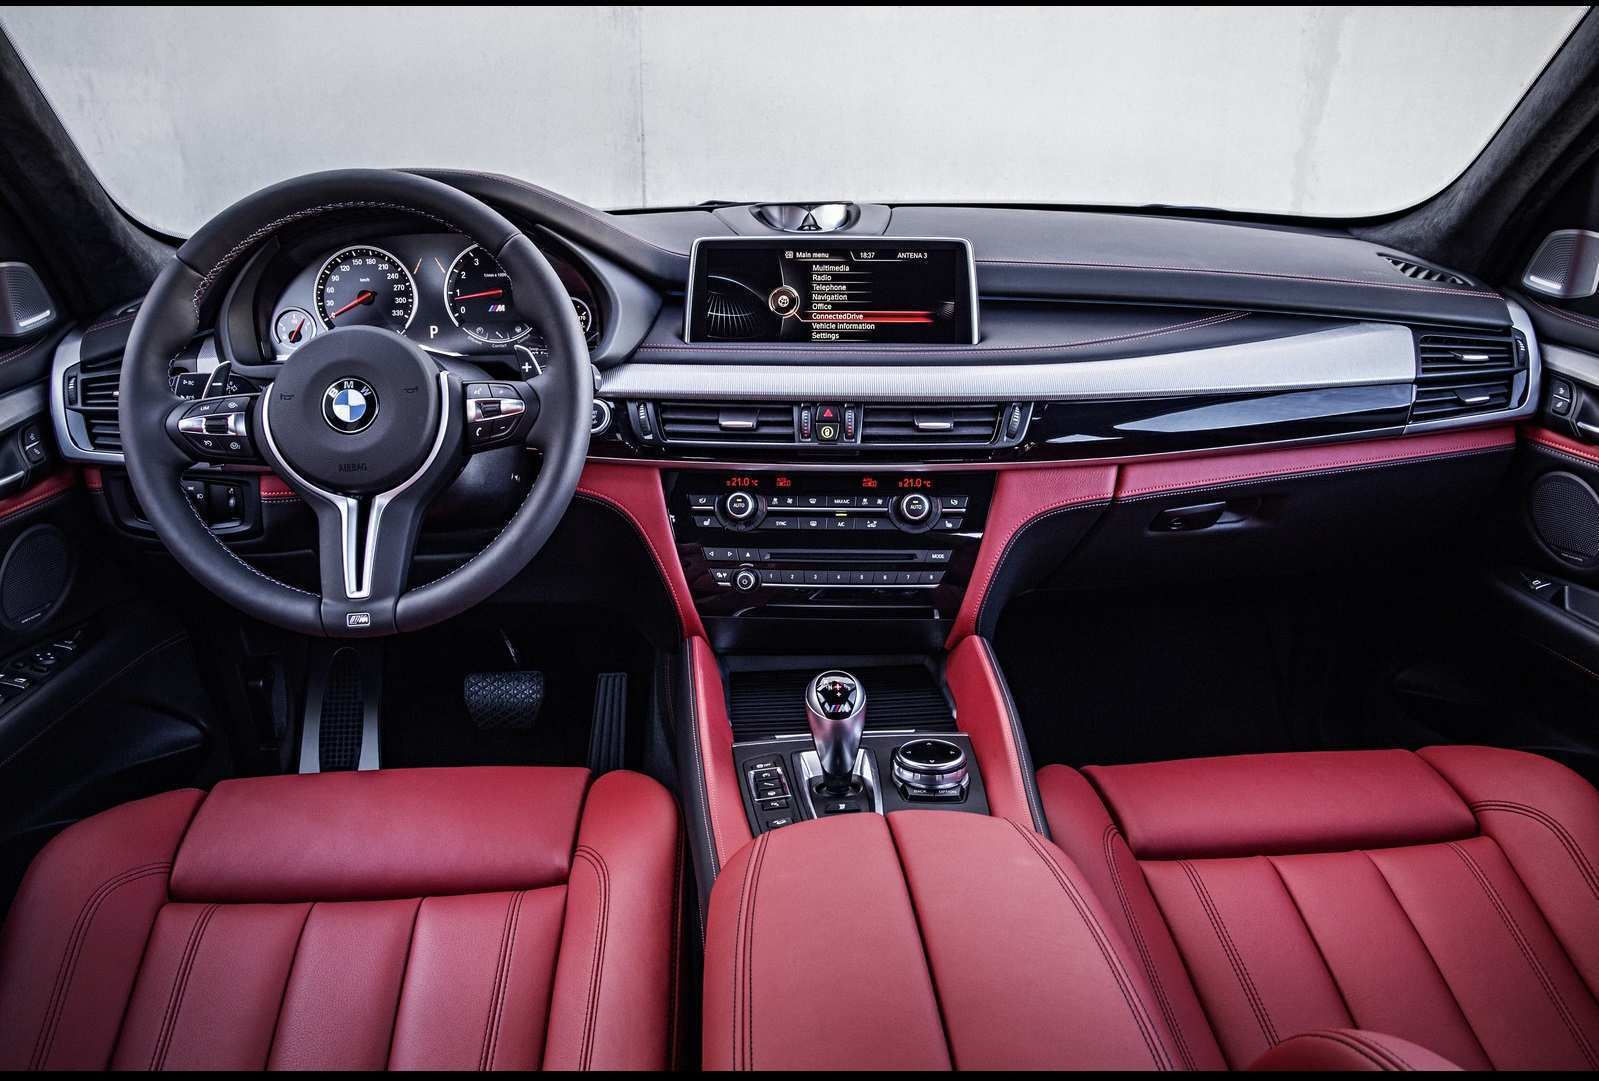 75 Concept of 2020 Bmw X5 Interior Style by 2020 Bmw X5 Interior